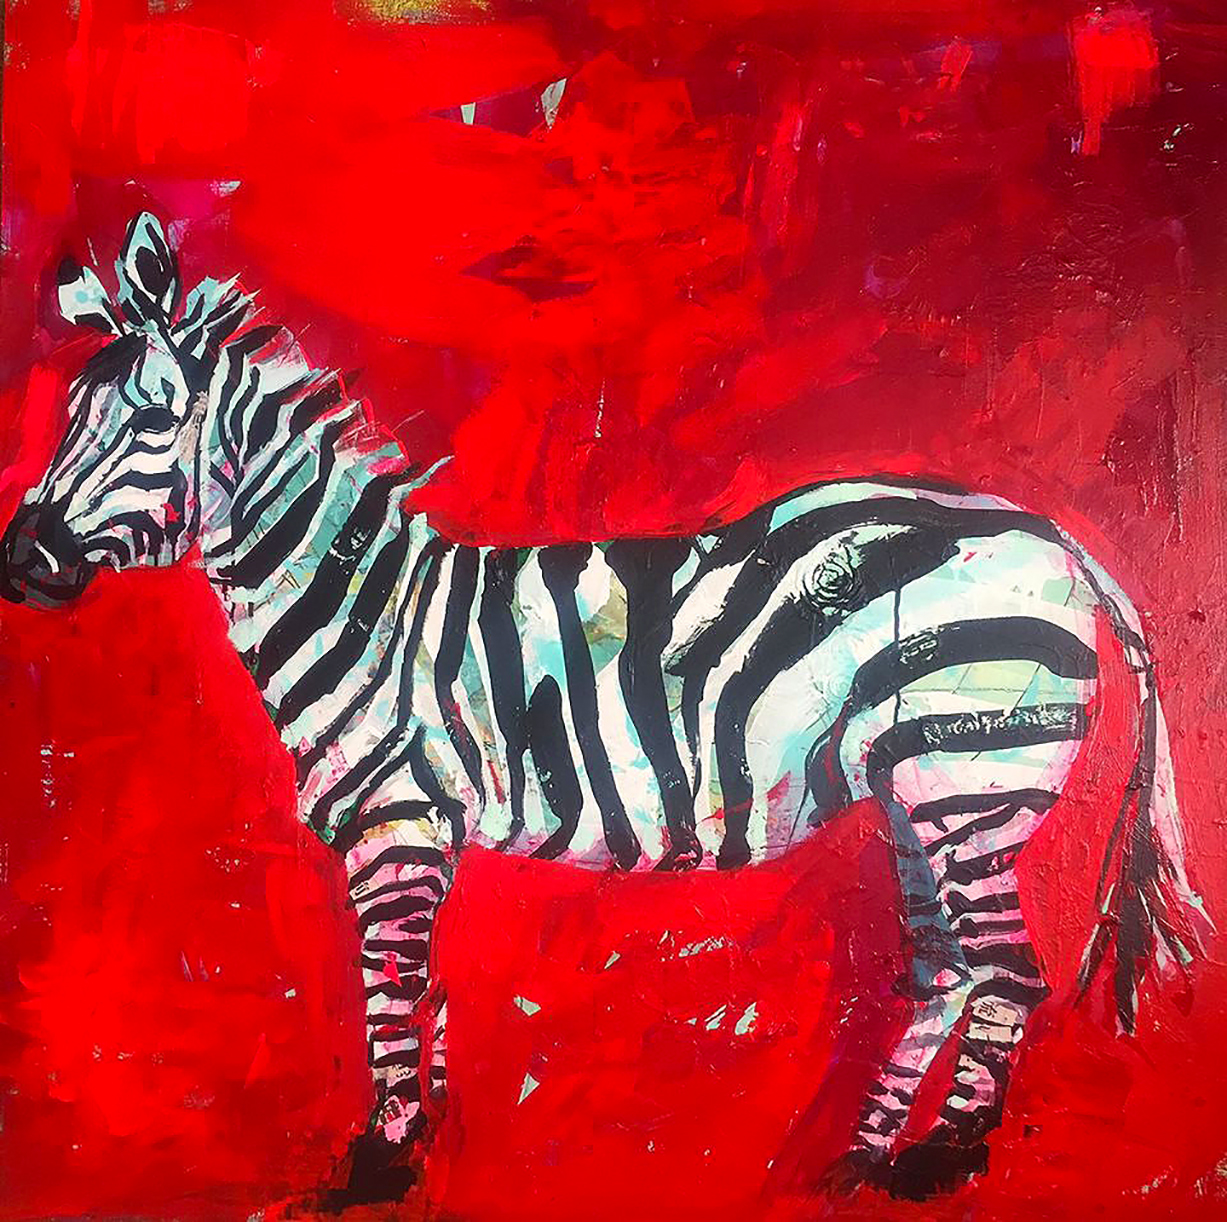 Zebra painting, mixed media on canvas, 48